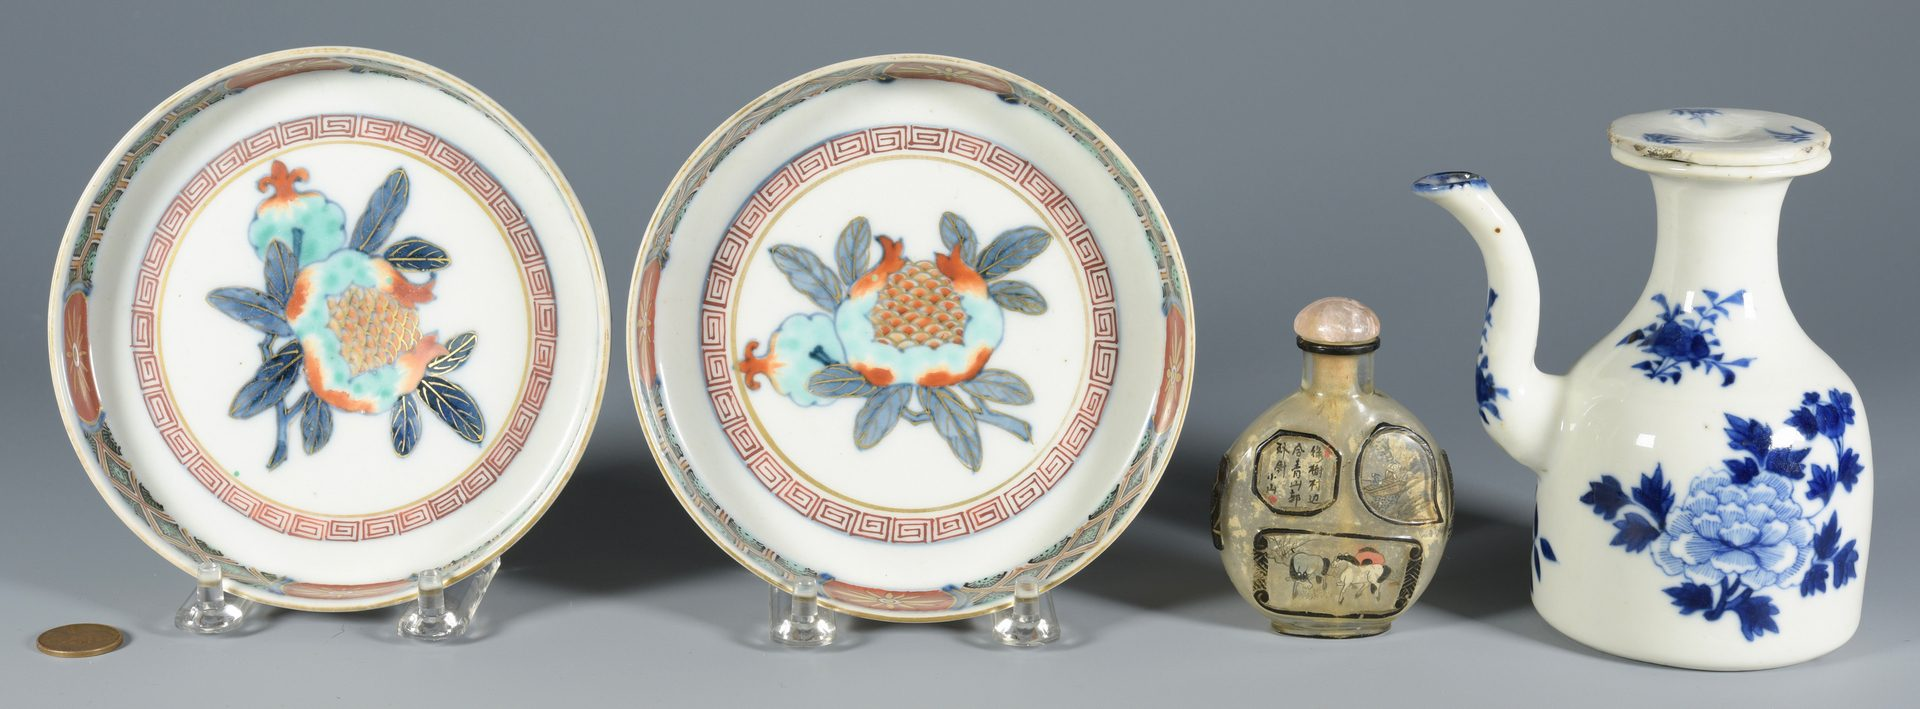 Lot 349: Asian Snuff bottle, Imari and Ewer – 3 items